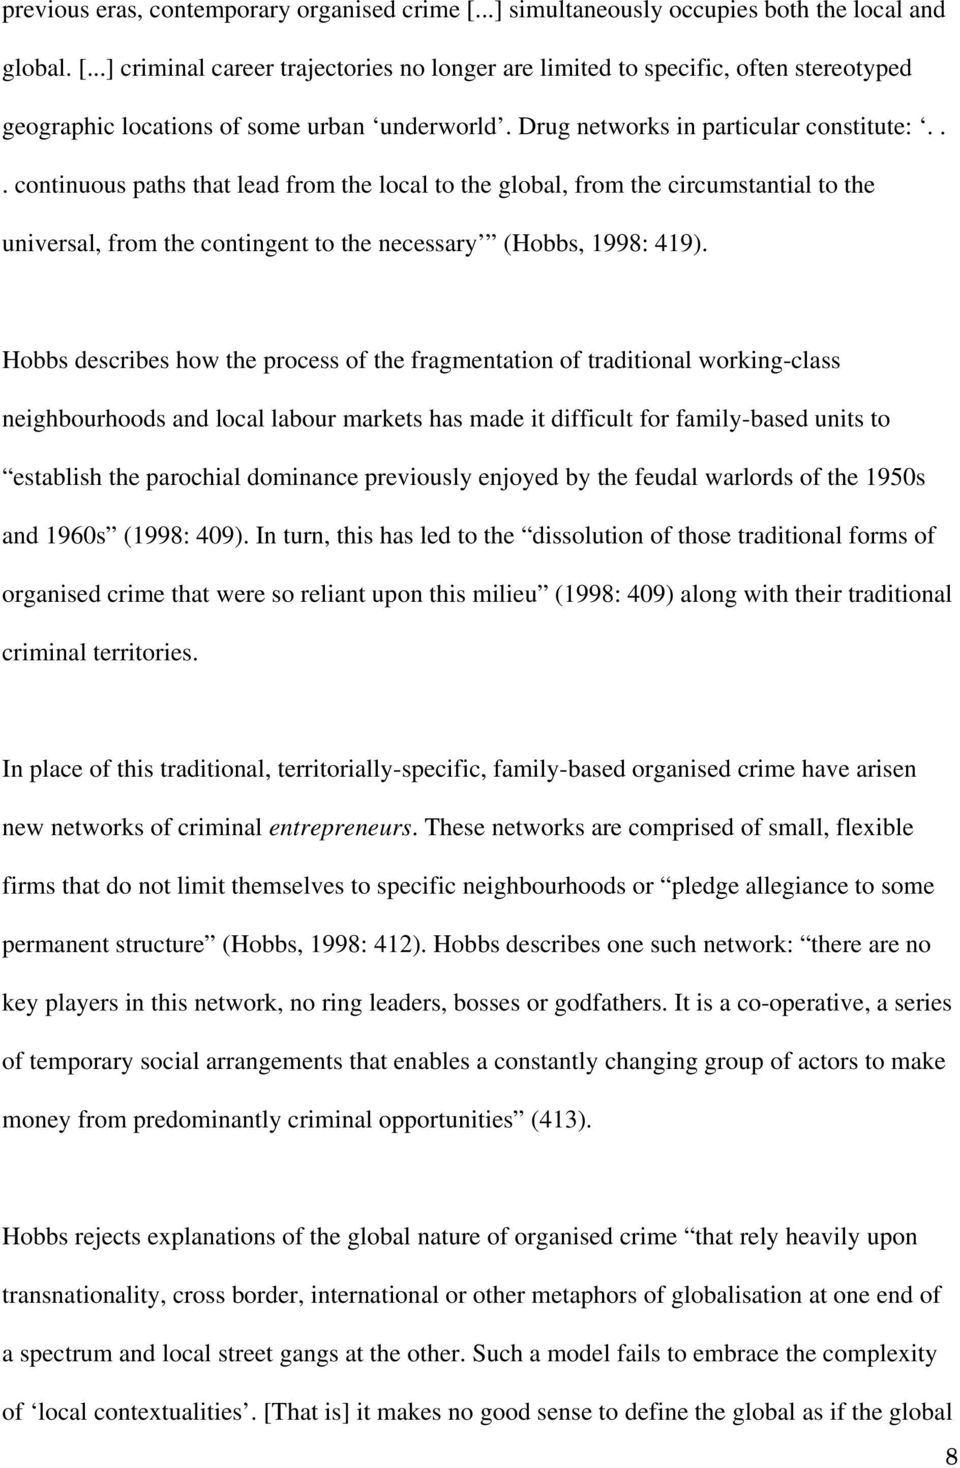 Hobbs describes how the process of the fragmentation of traditional working-class neighbourhoods and local labour markets has made it difficult for family-based units to establish the parochial